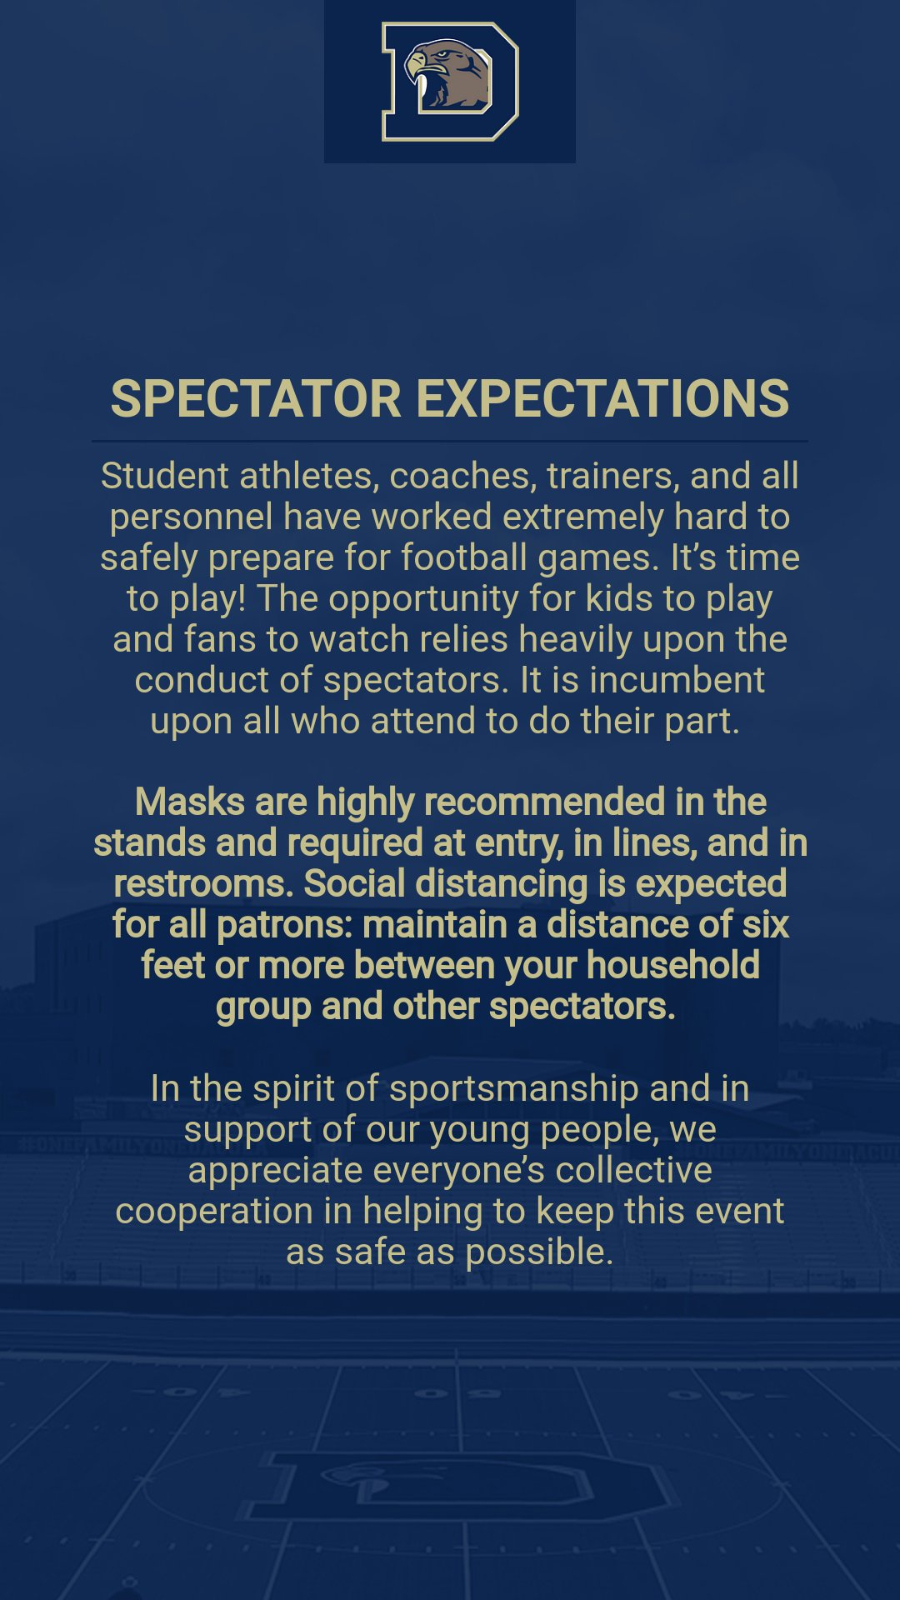 Spectator Expectations